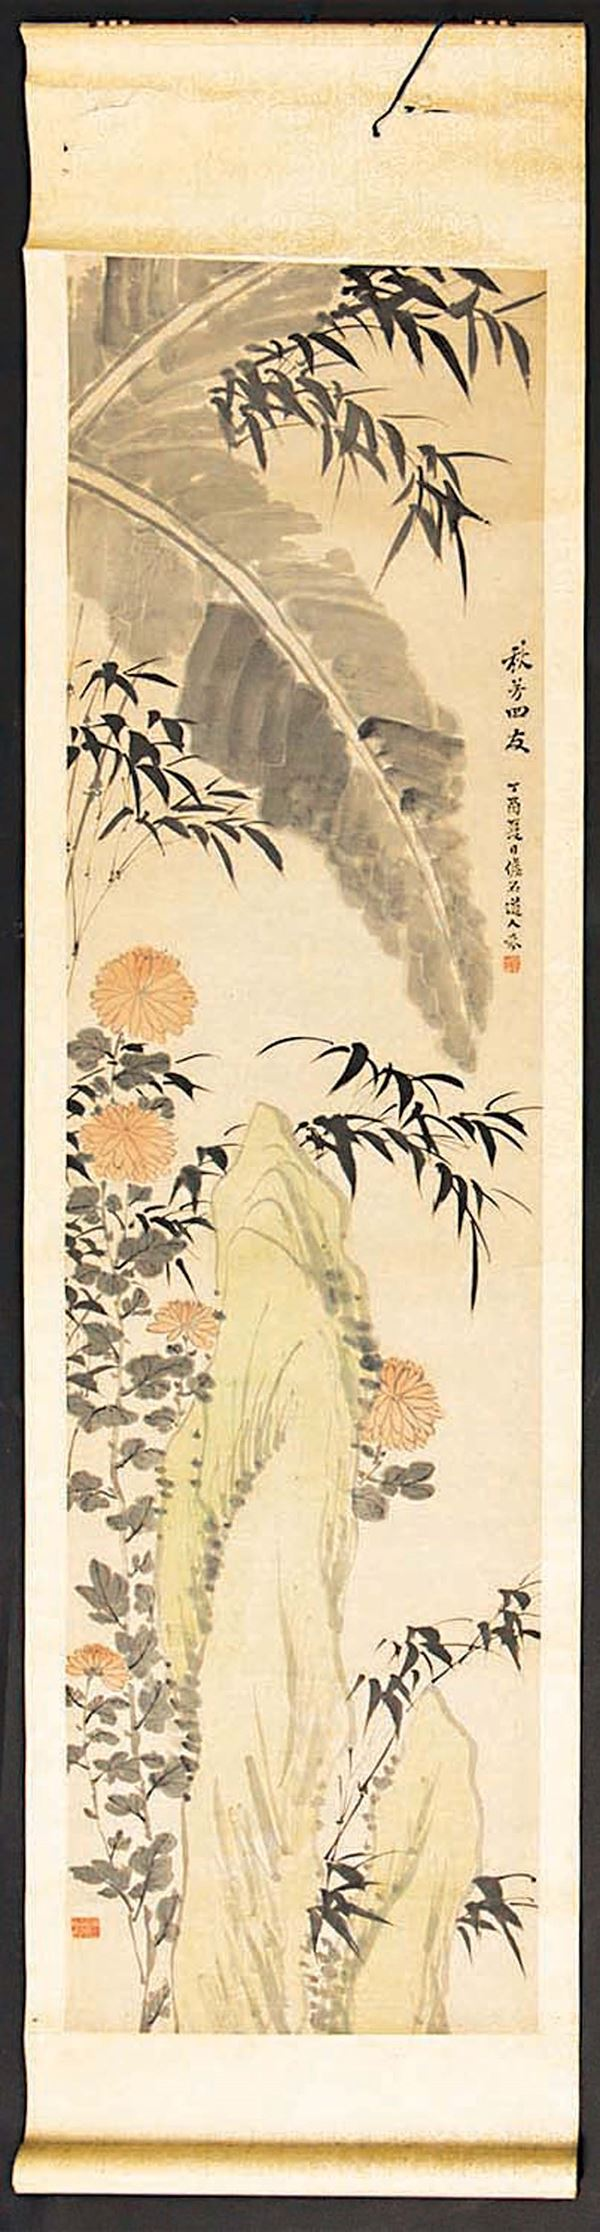 A painting on paper depicting a mountain with flowers and inscription, China, Qing Dynasty, 19th century